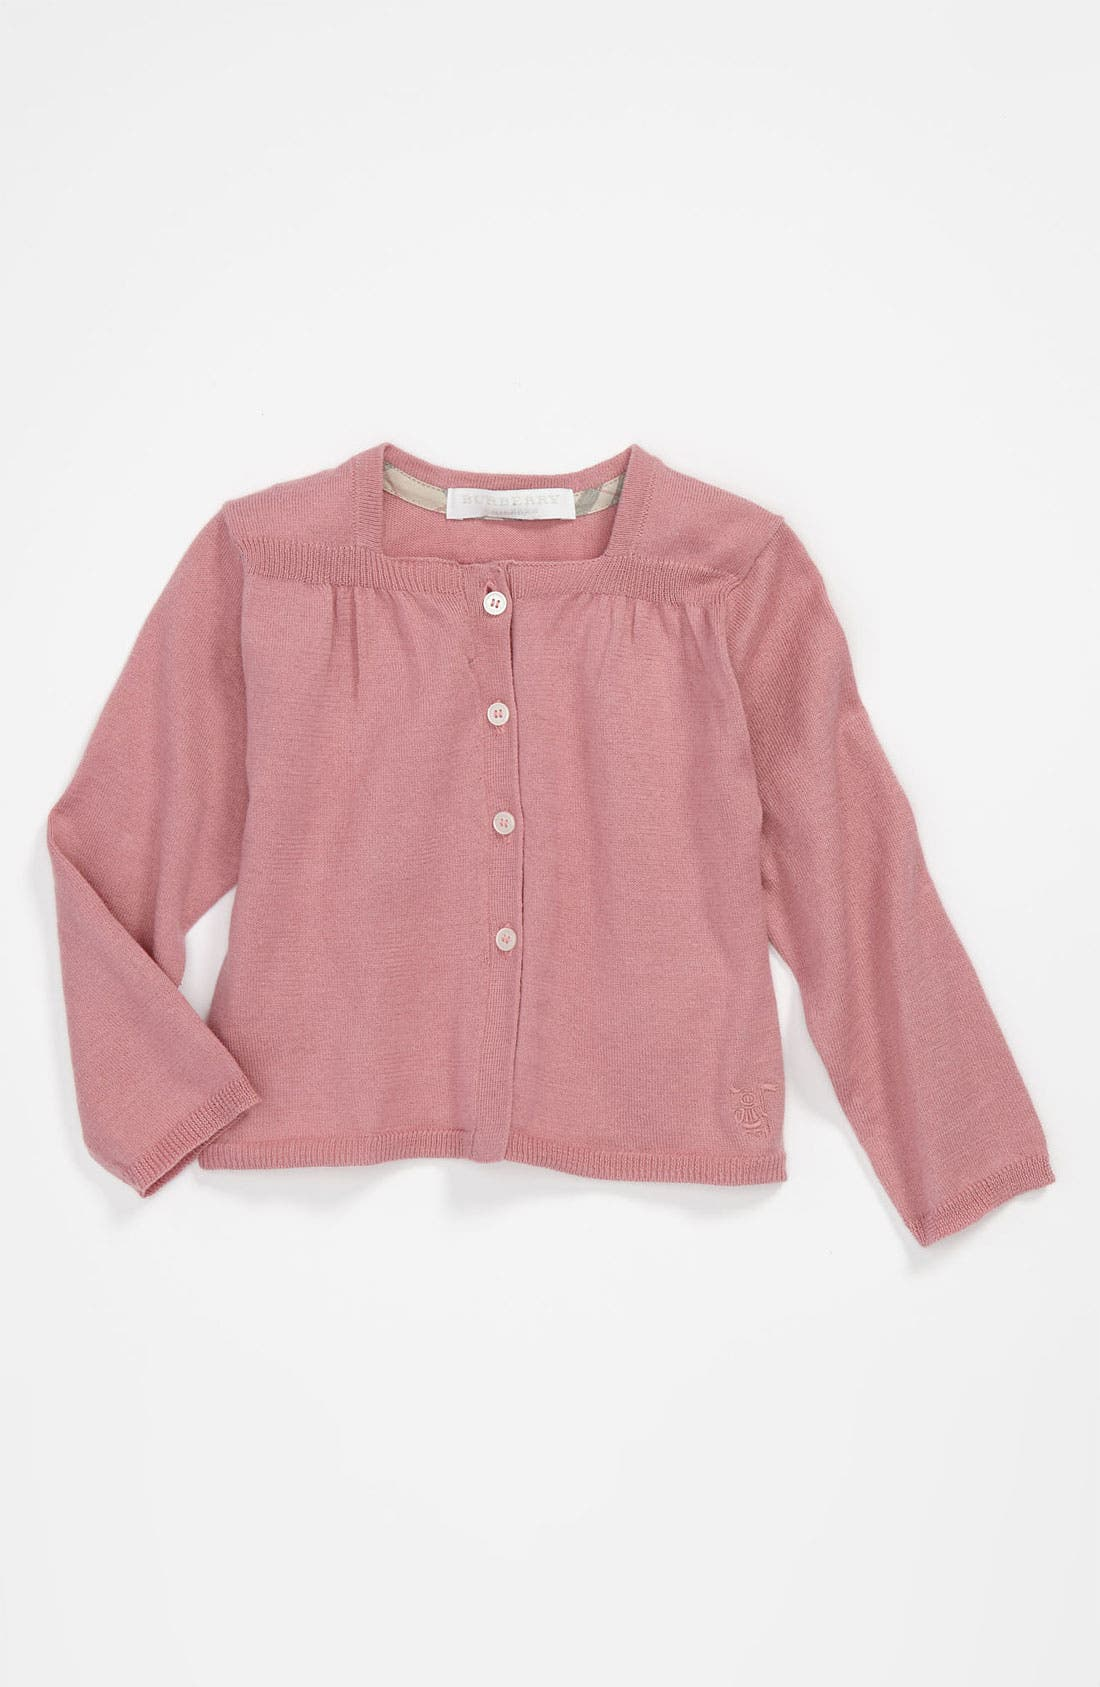 Alternate Image 1 Selected - Burberry 'Fleur' Knit Cardigan (Baby)